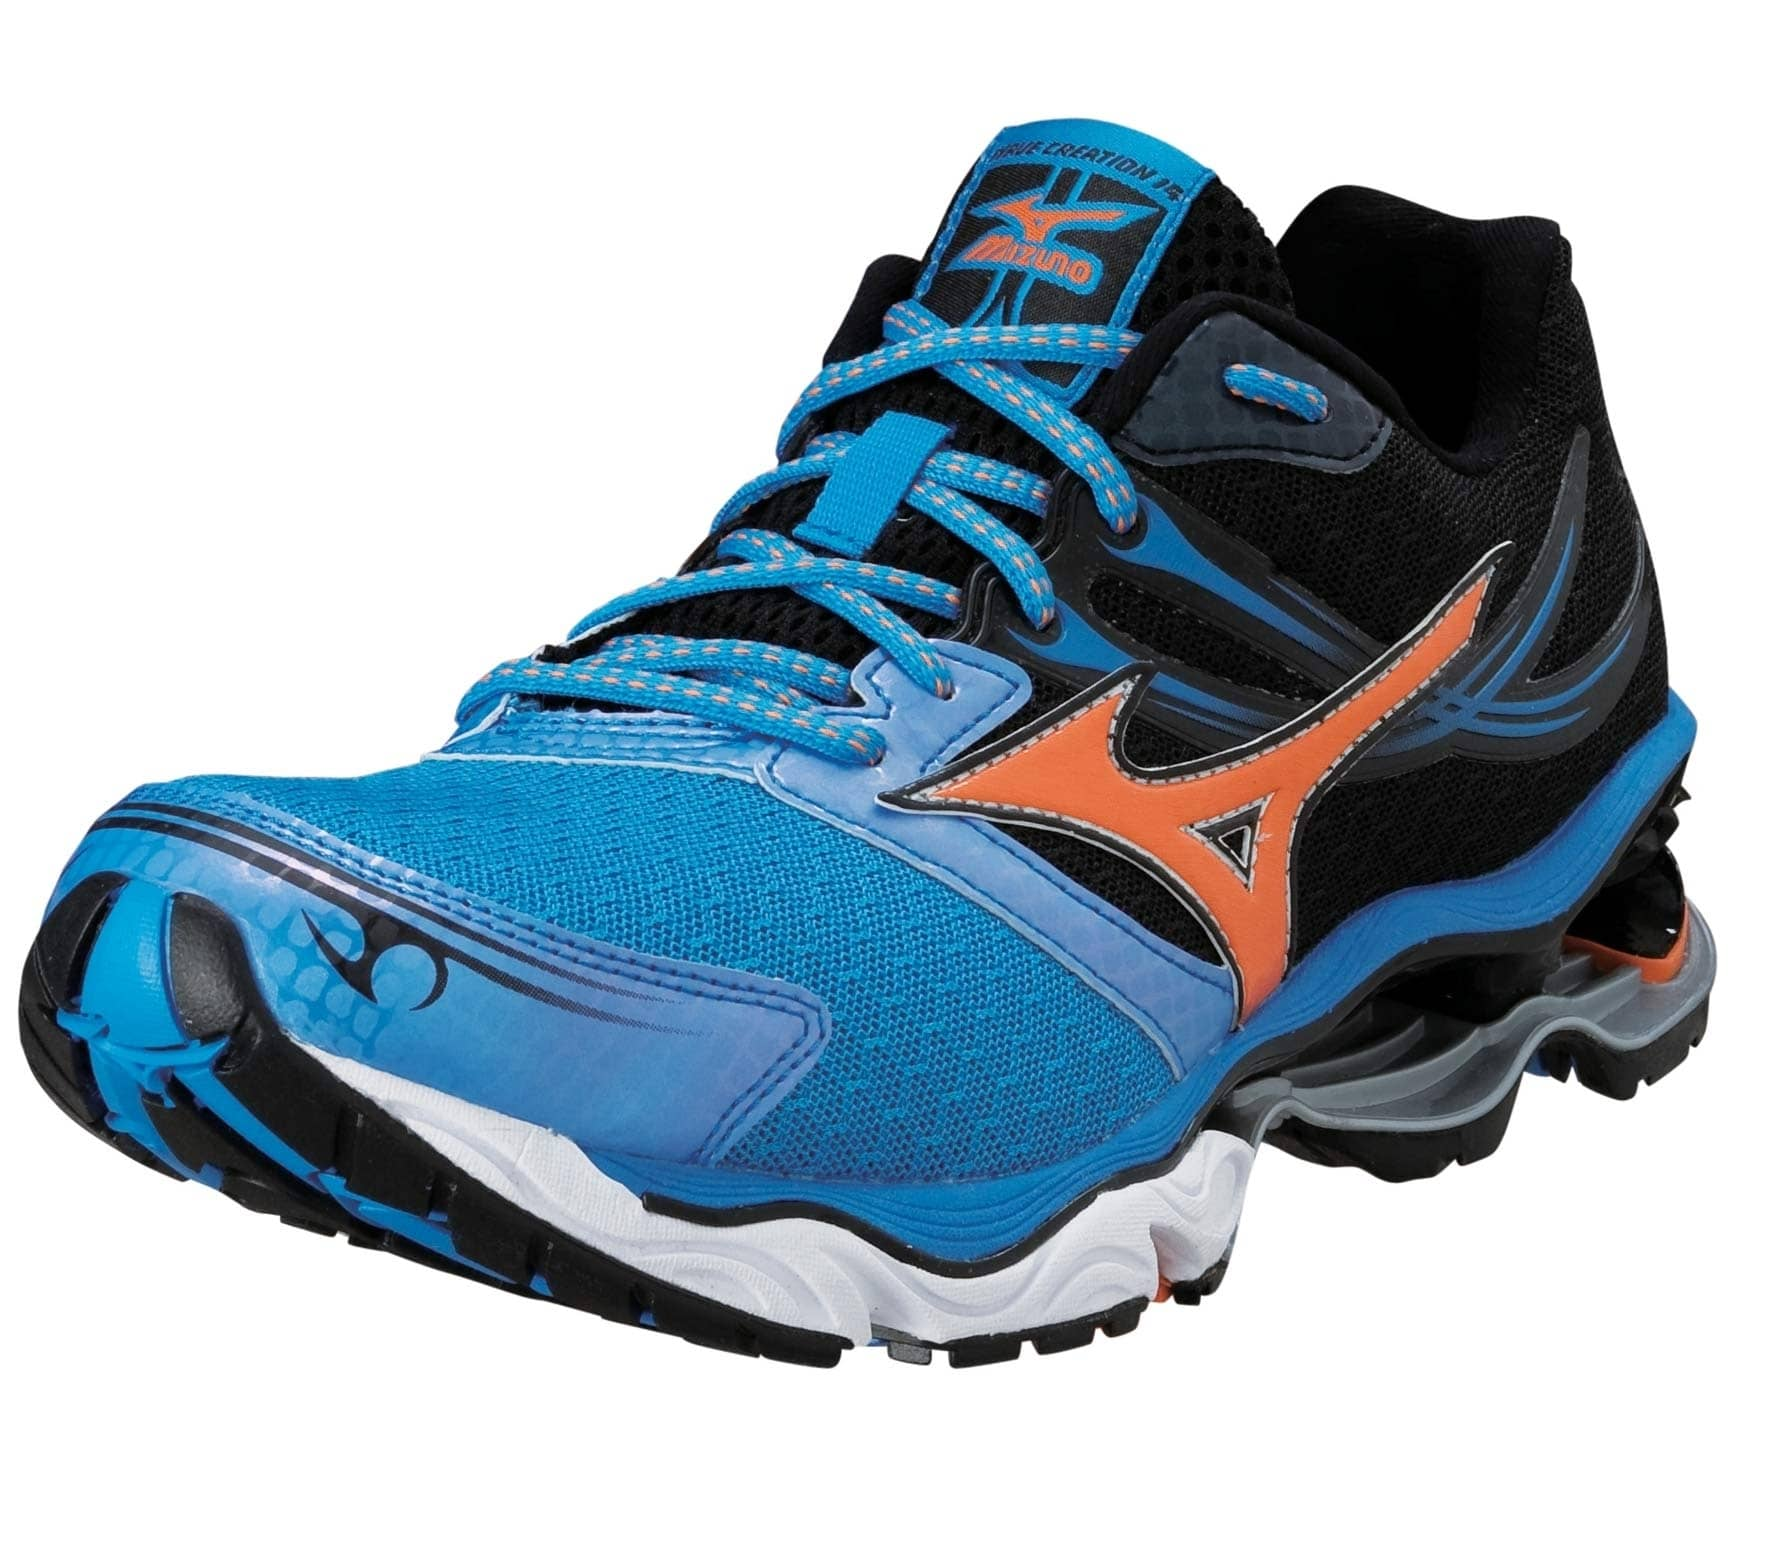 new arrival 0cb87 e95bb Mizuno - Wave Creation 14 men s running shoes (blue black)